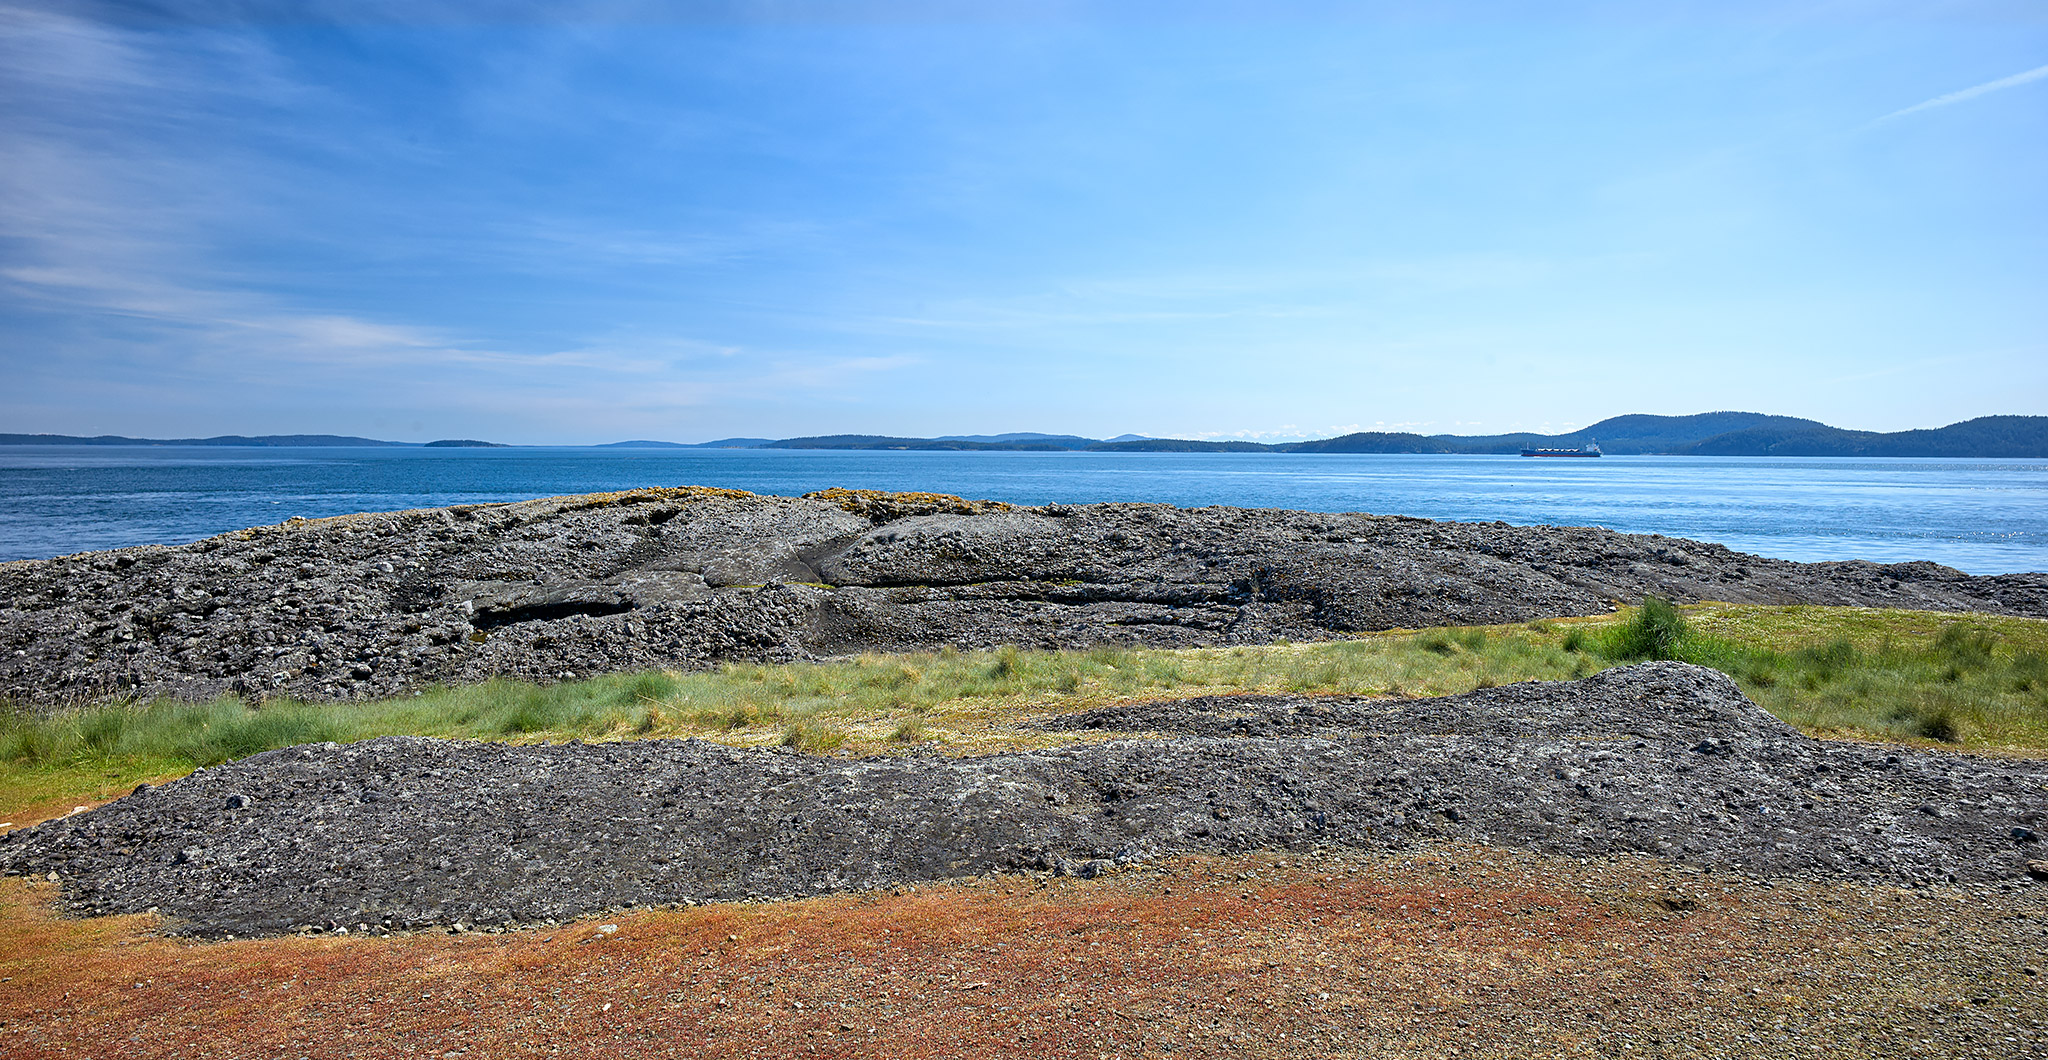 Brooks Point, South Pender Island ©johncameron.ca